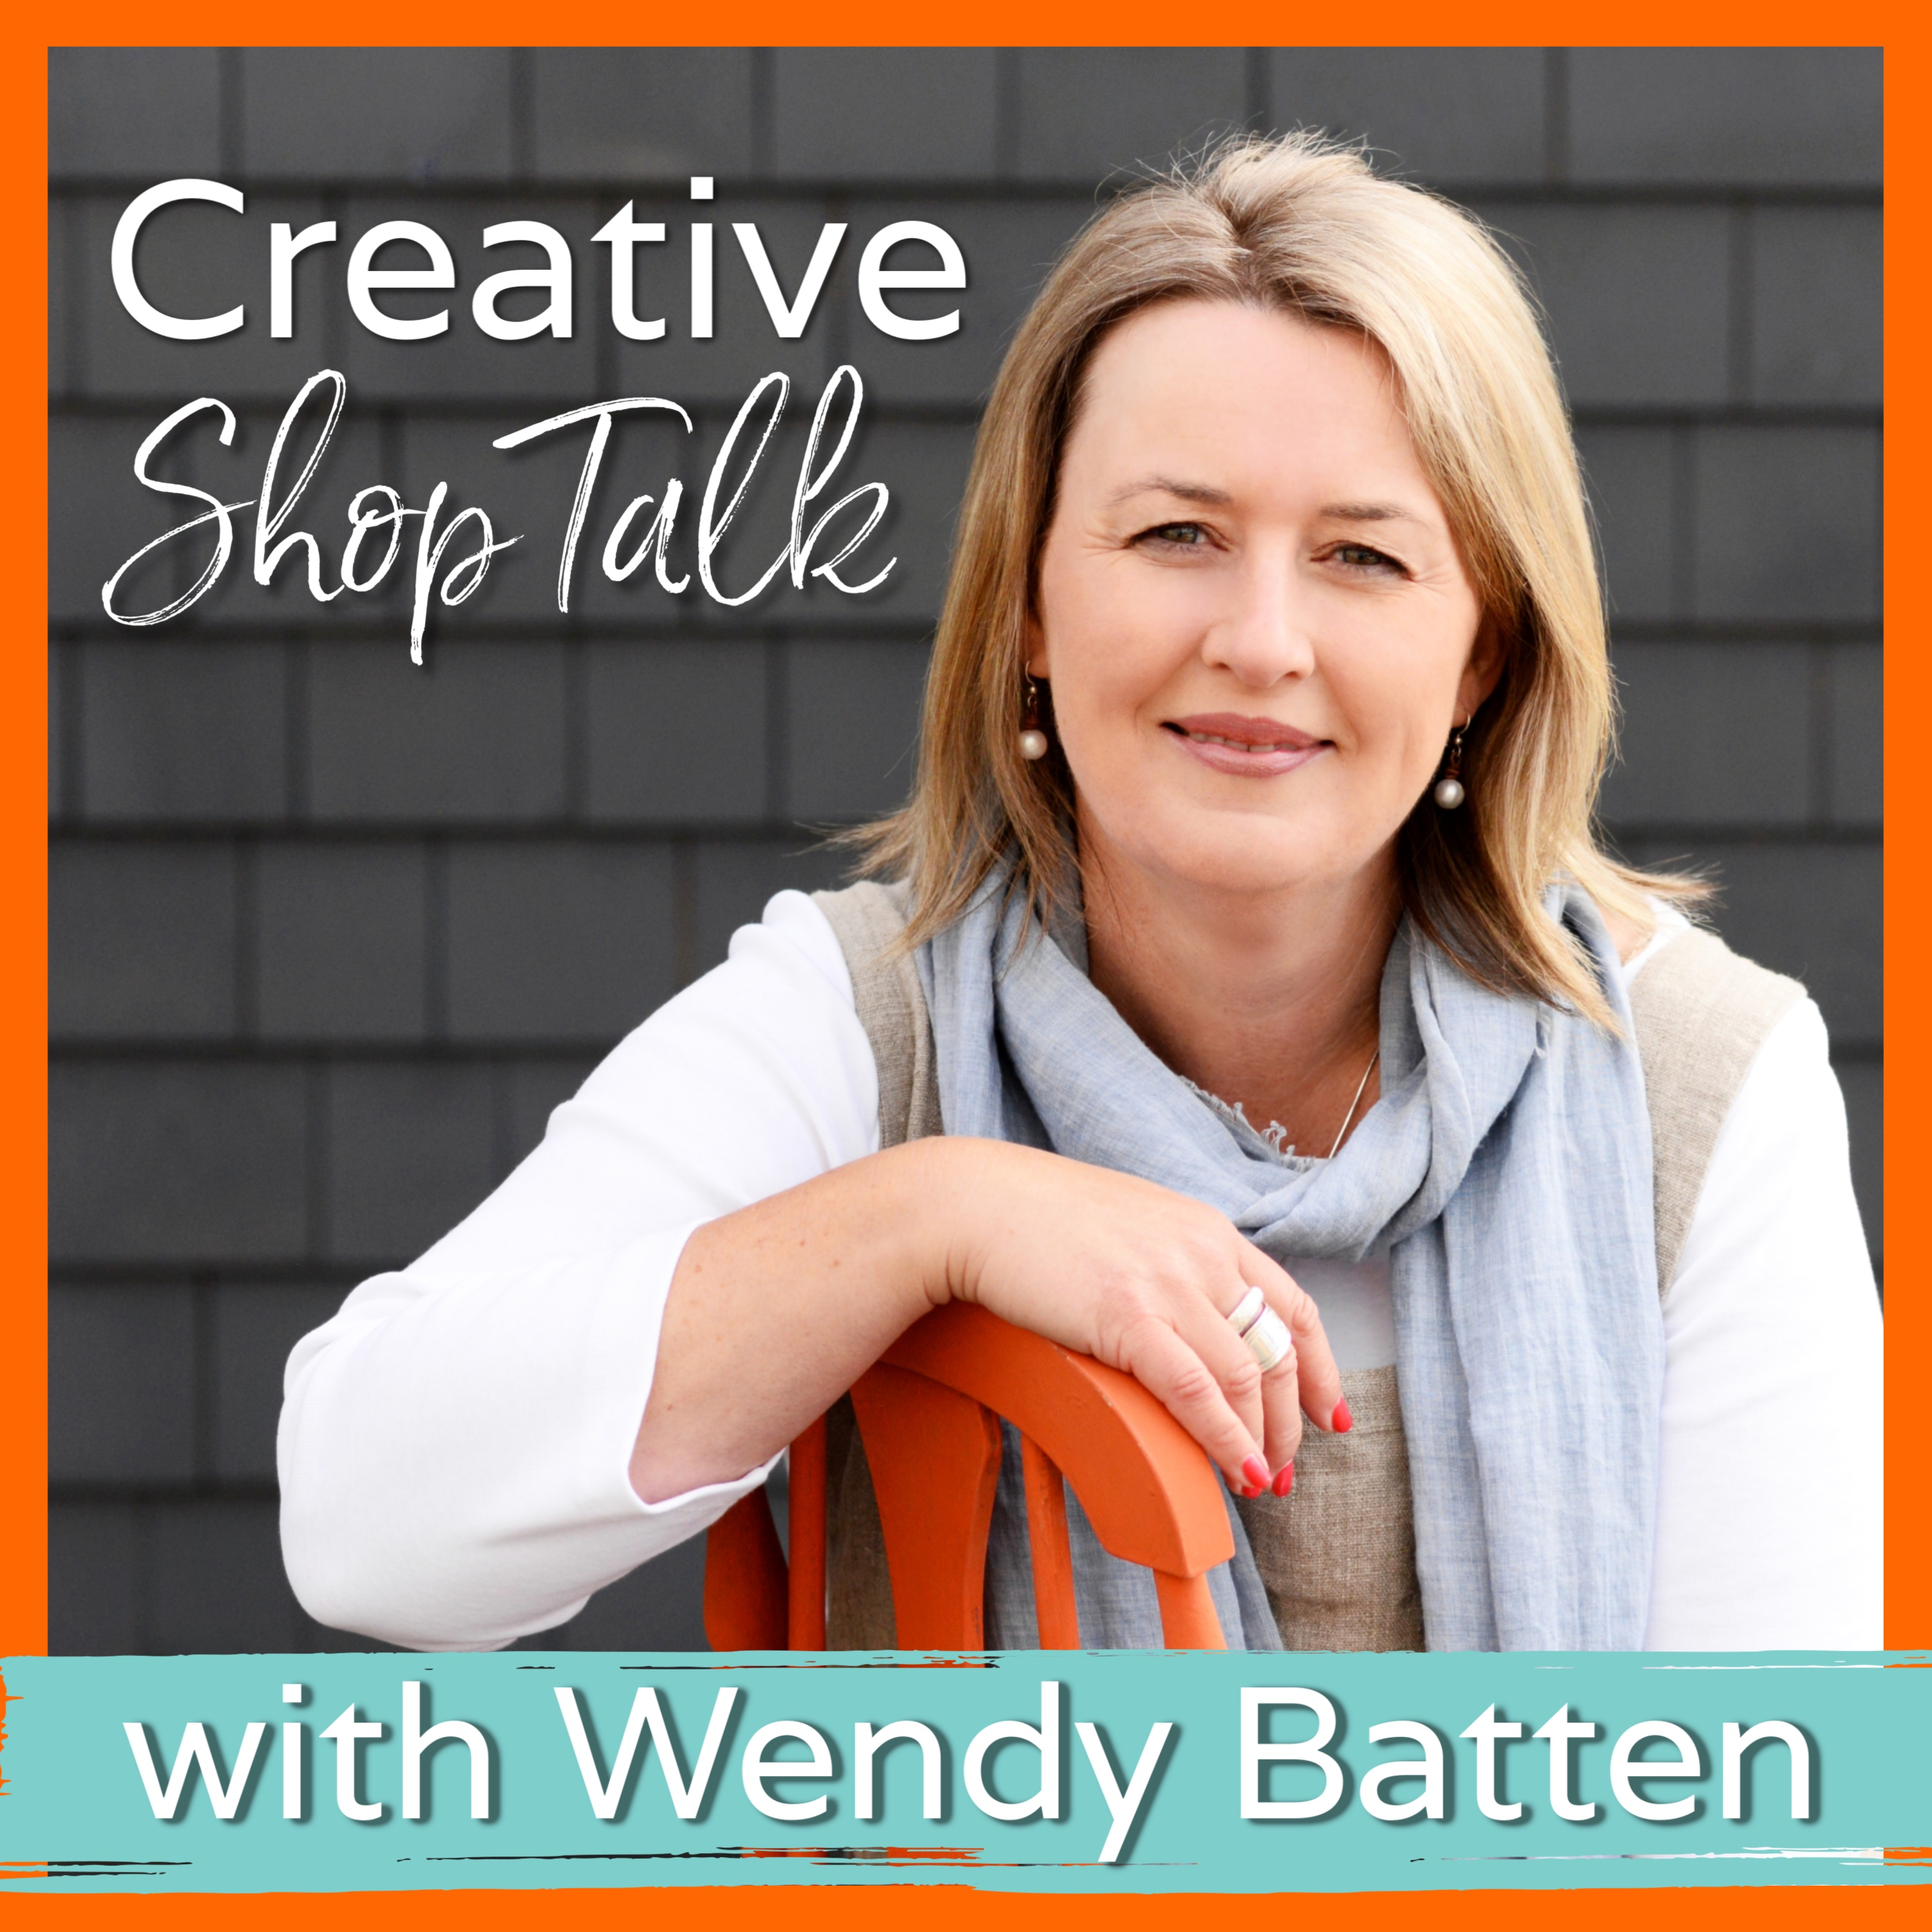 35. Five Tips for Finding Success as a Creative Retailer